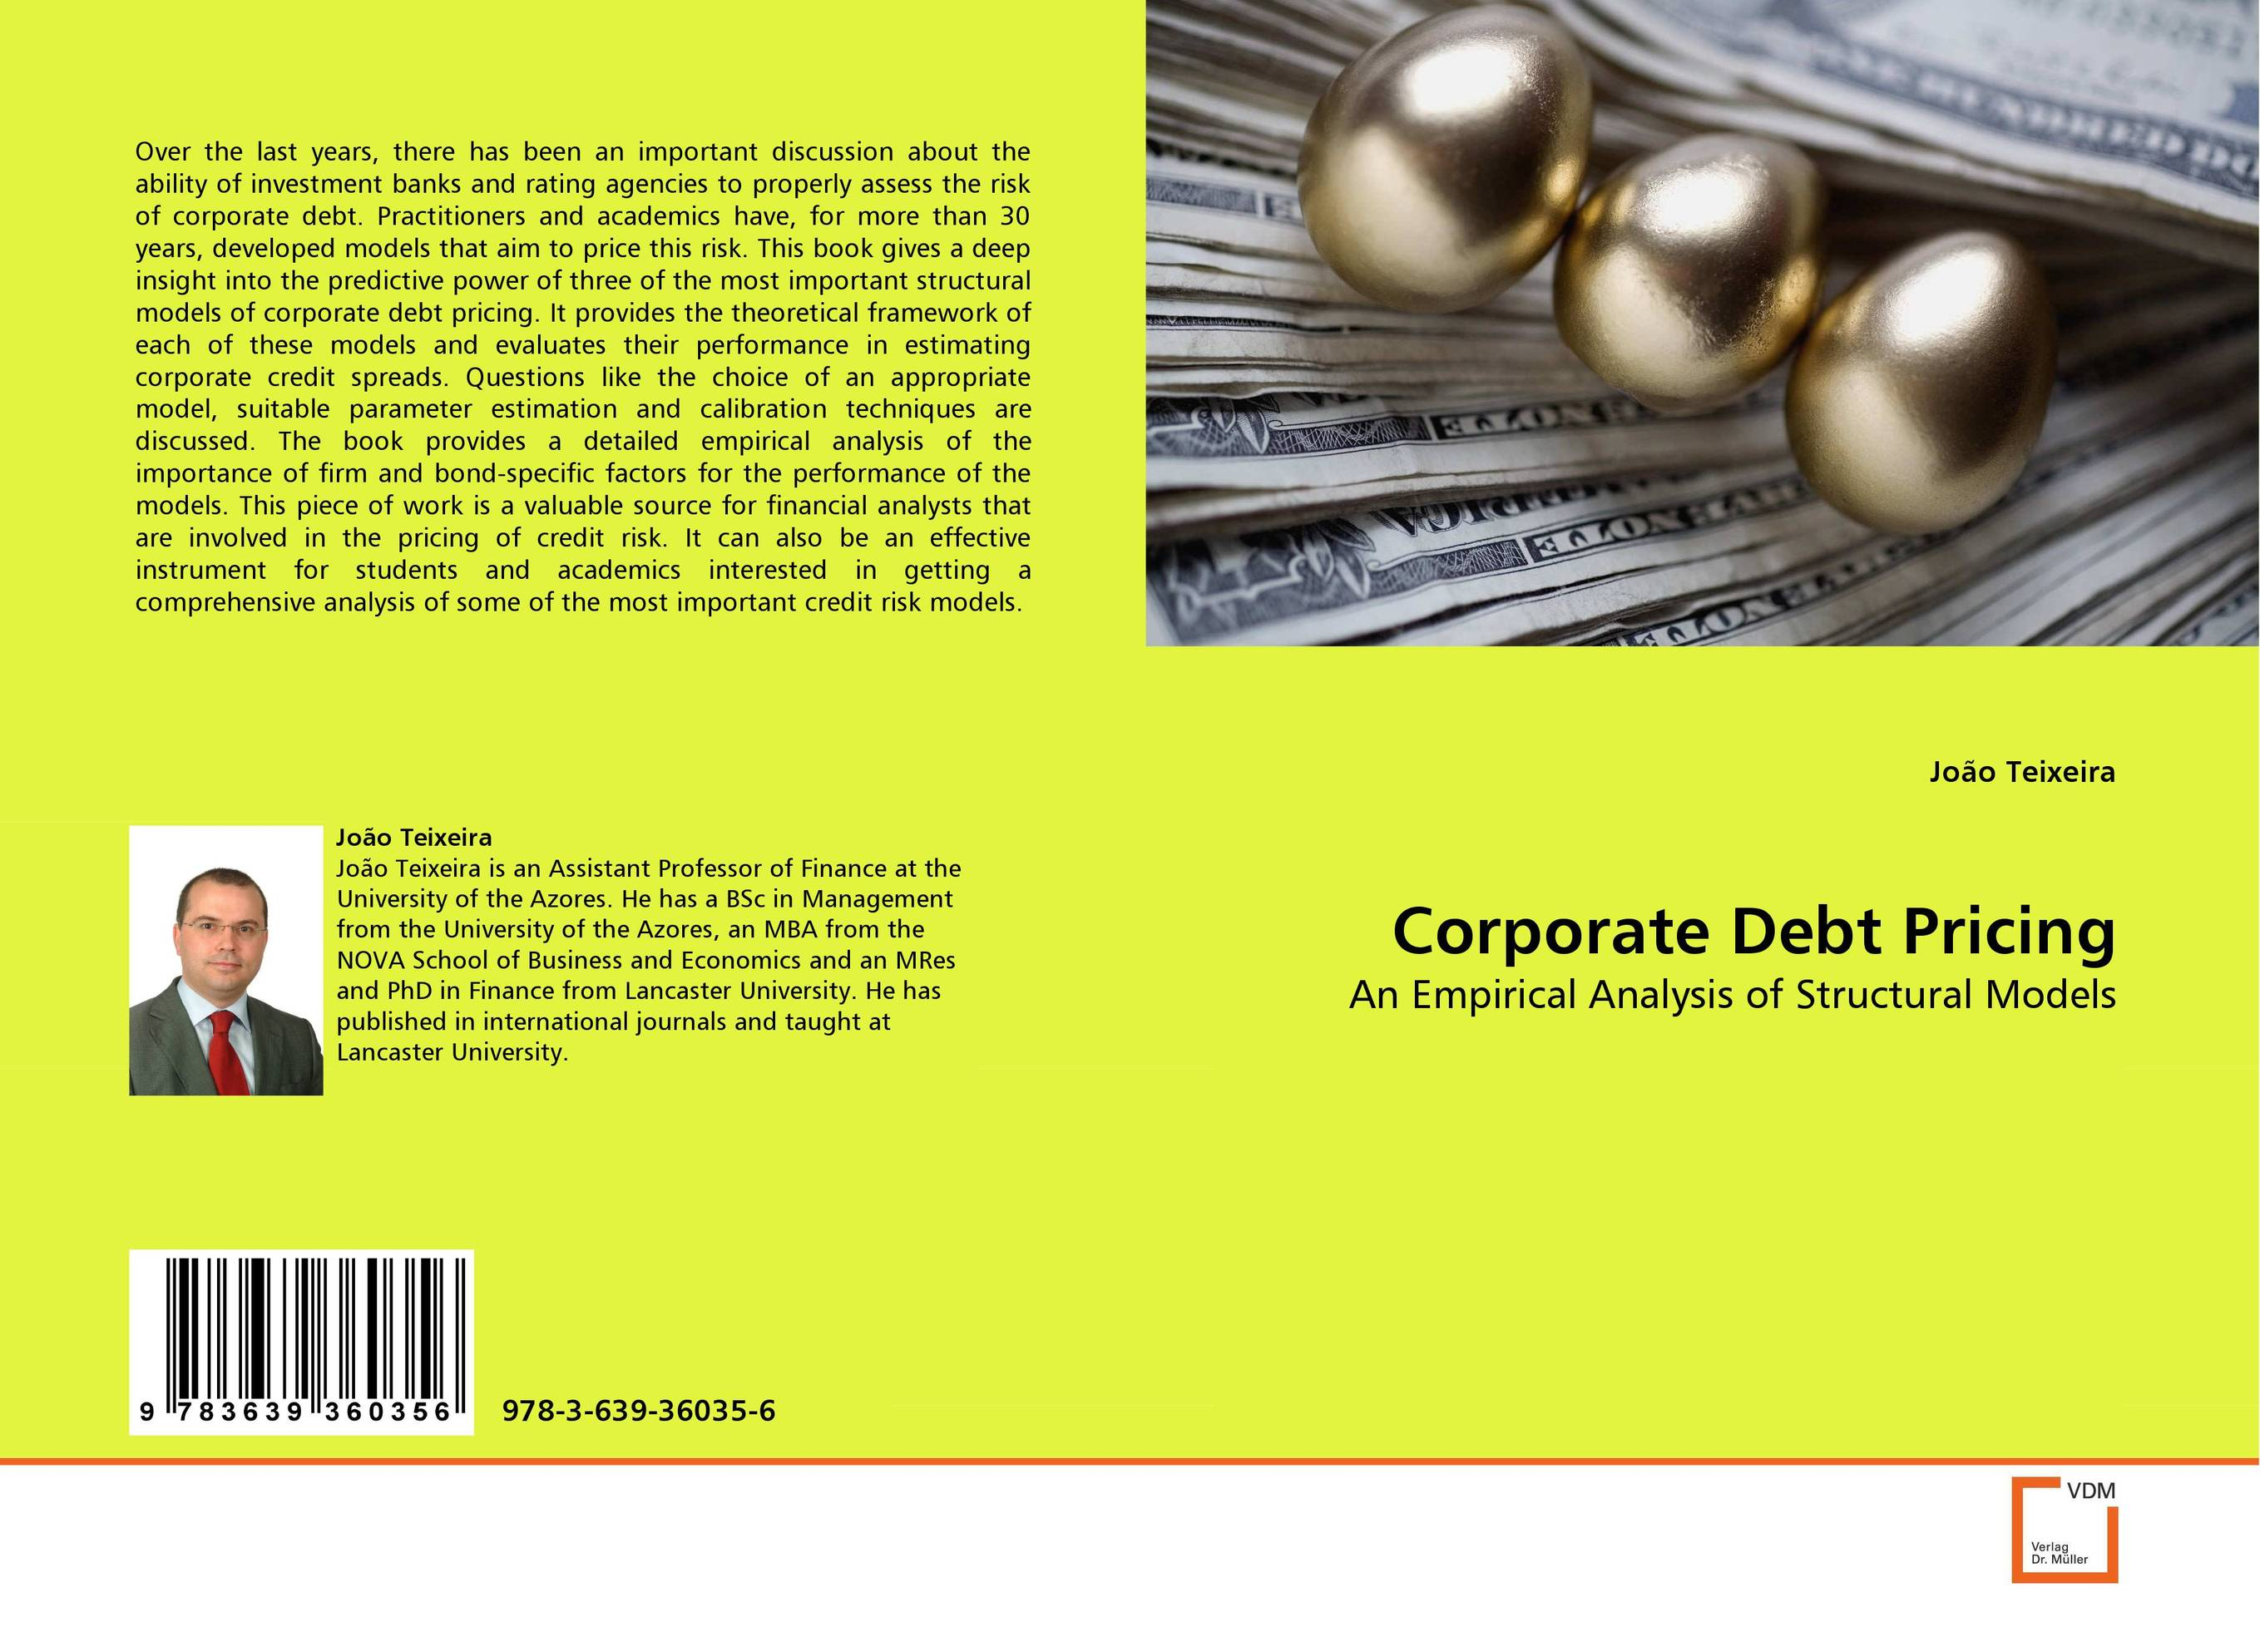 Corporate Debt Pricing corporate governance and firm value